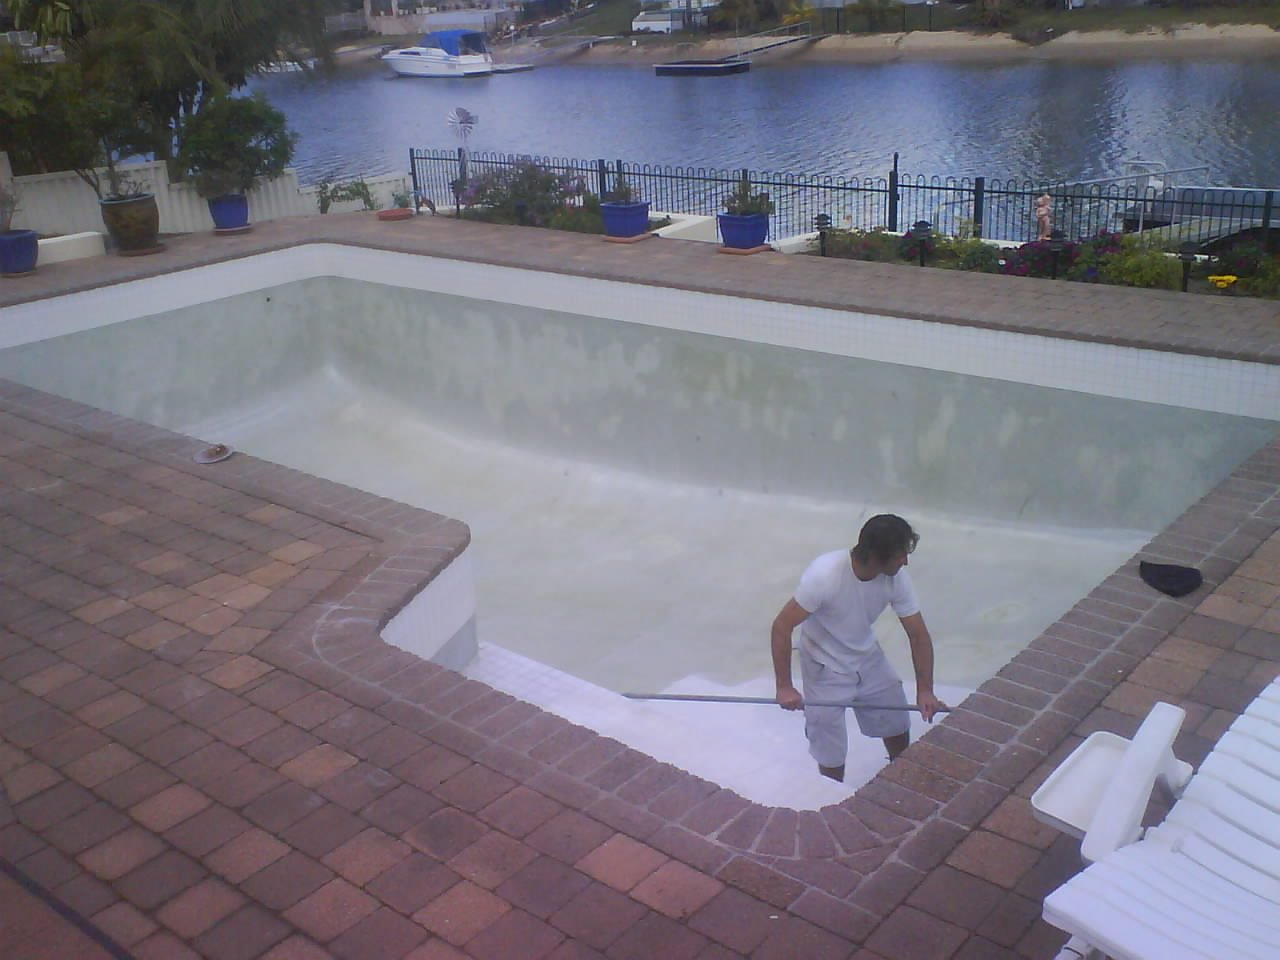 Specialist cleaning on the pool